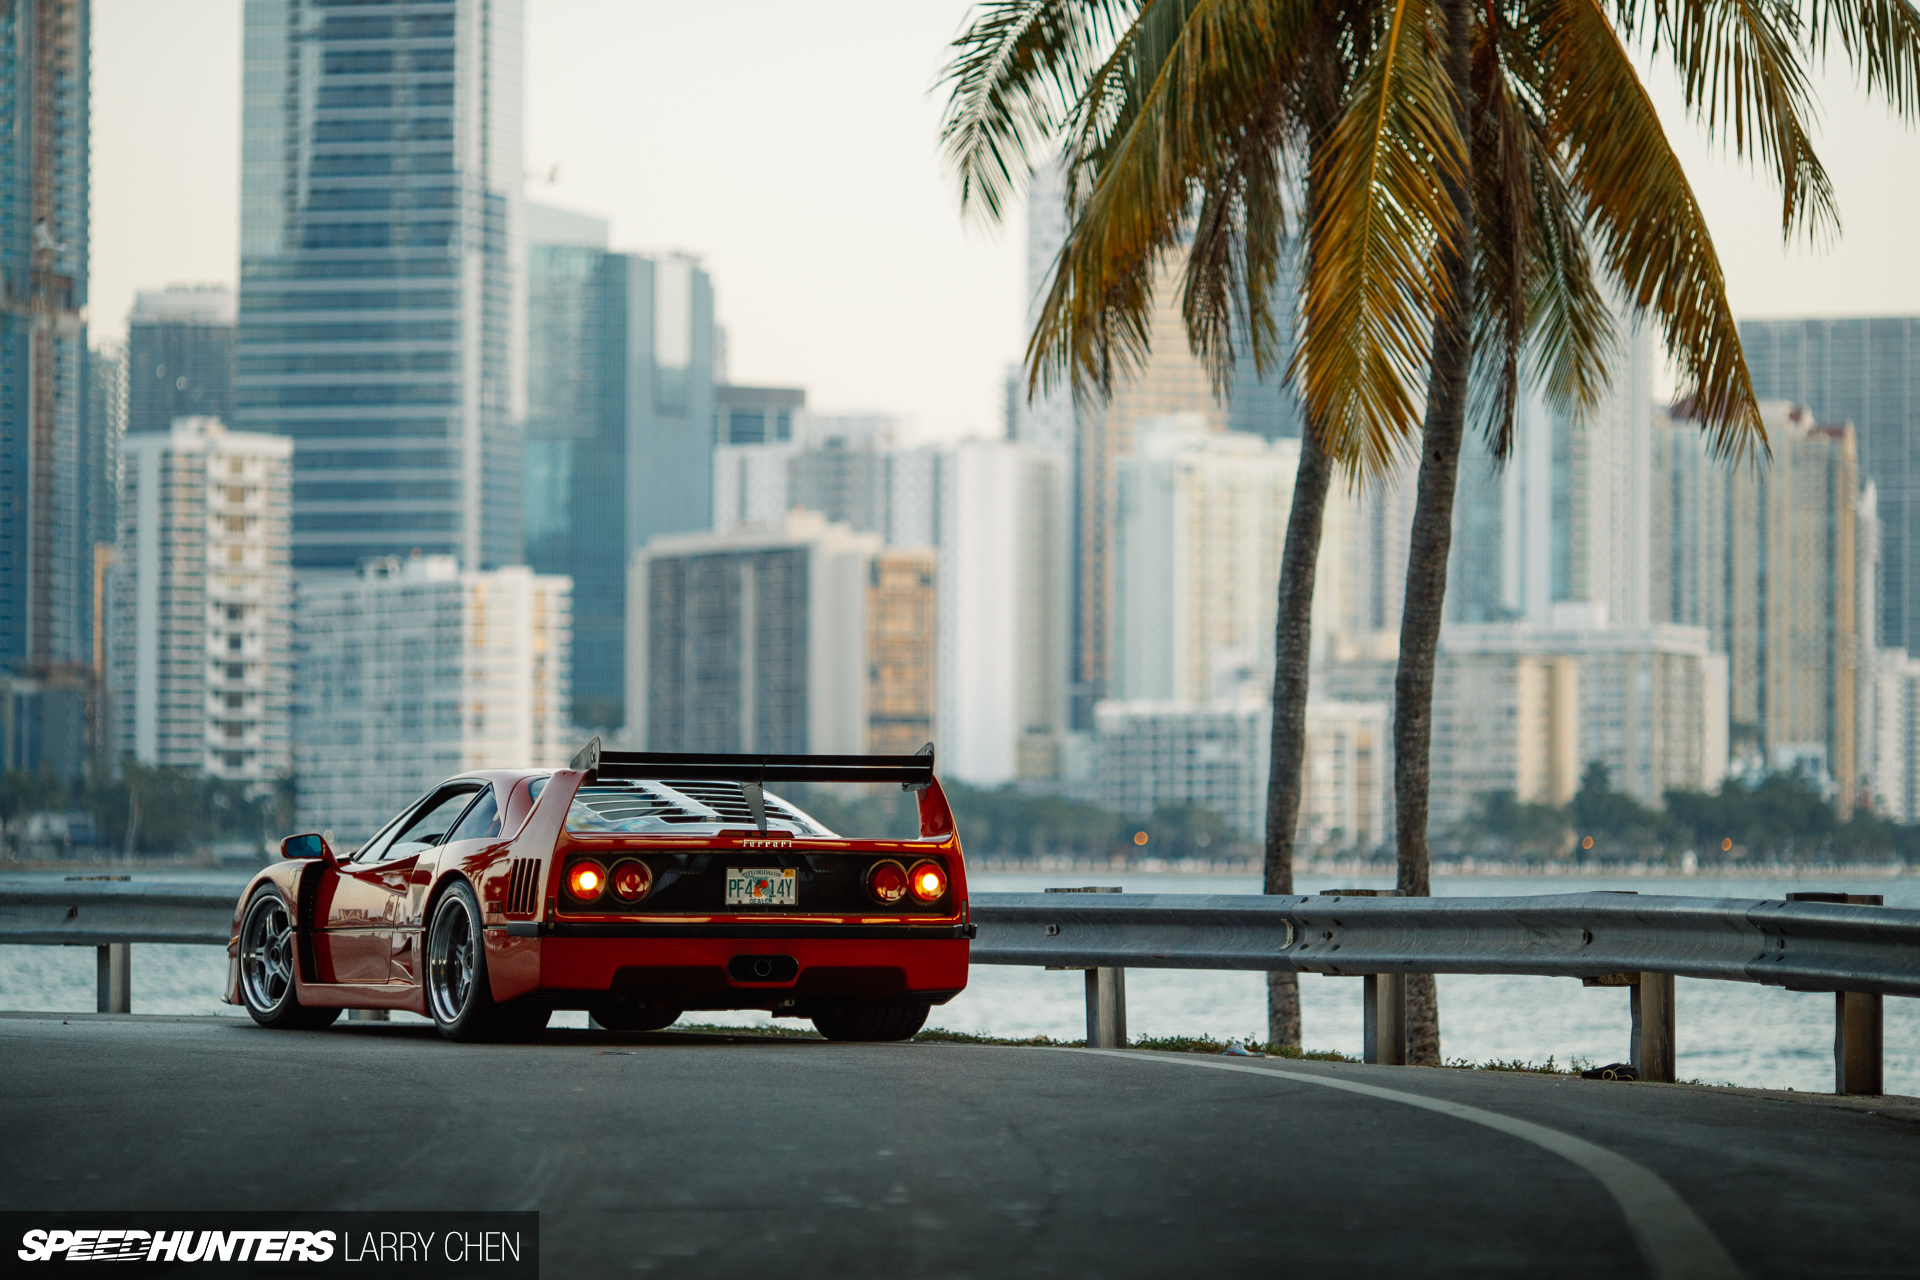 Muscle Car Hd Wallpapers 1080p A Ferrari F40 Miami Style Speedhunters